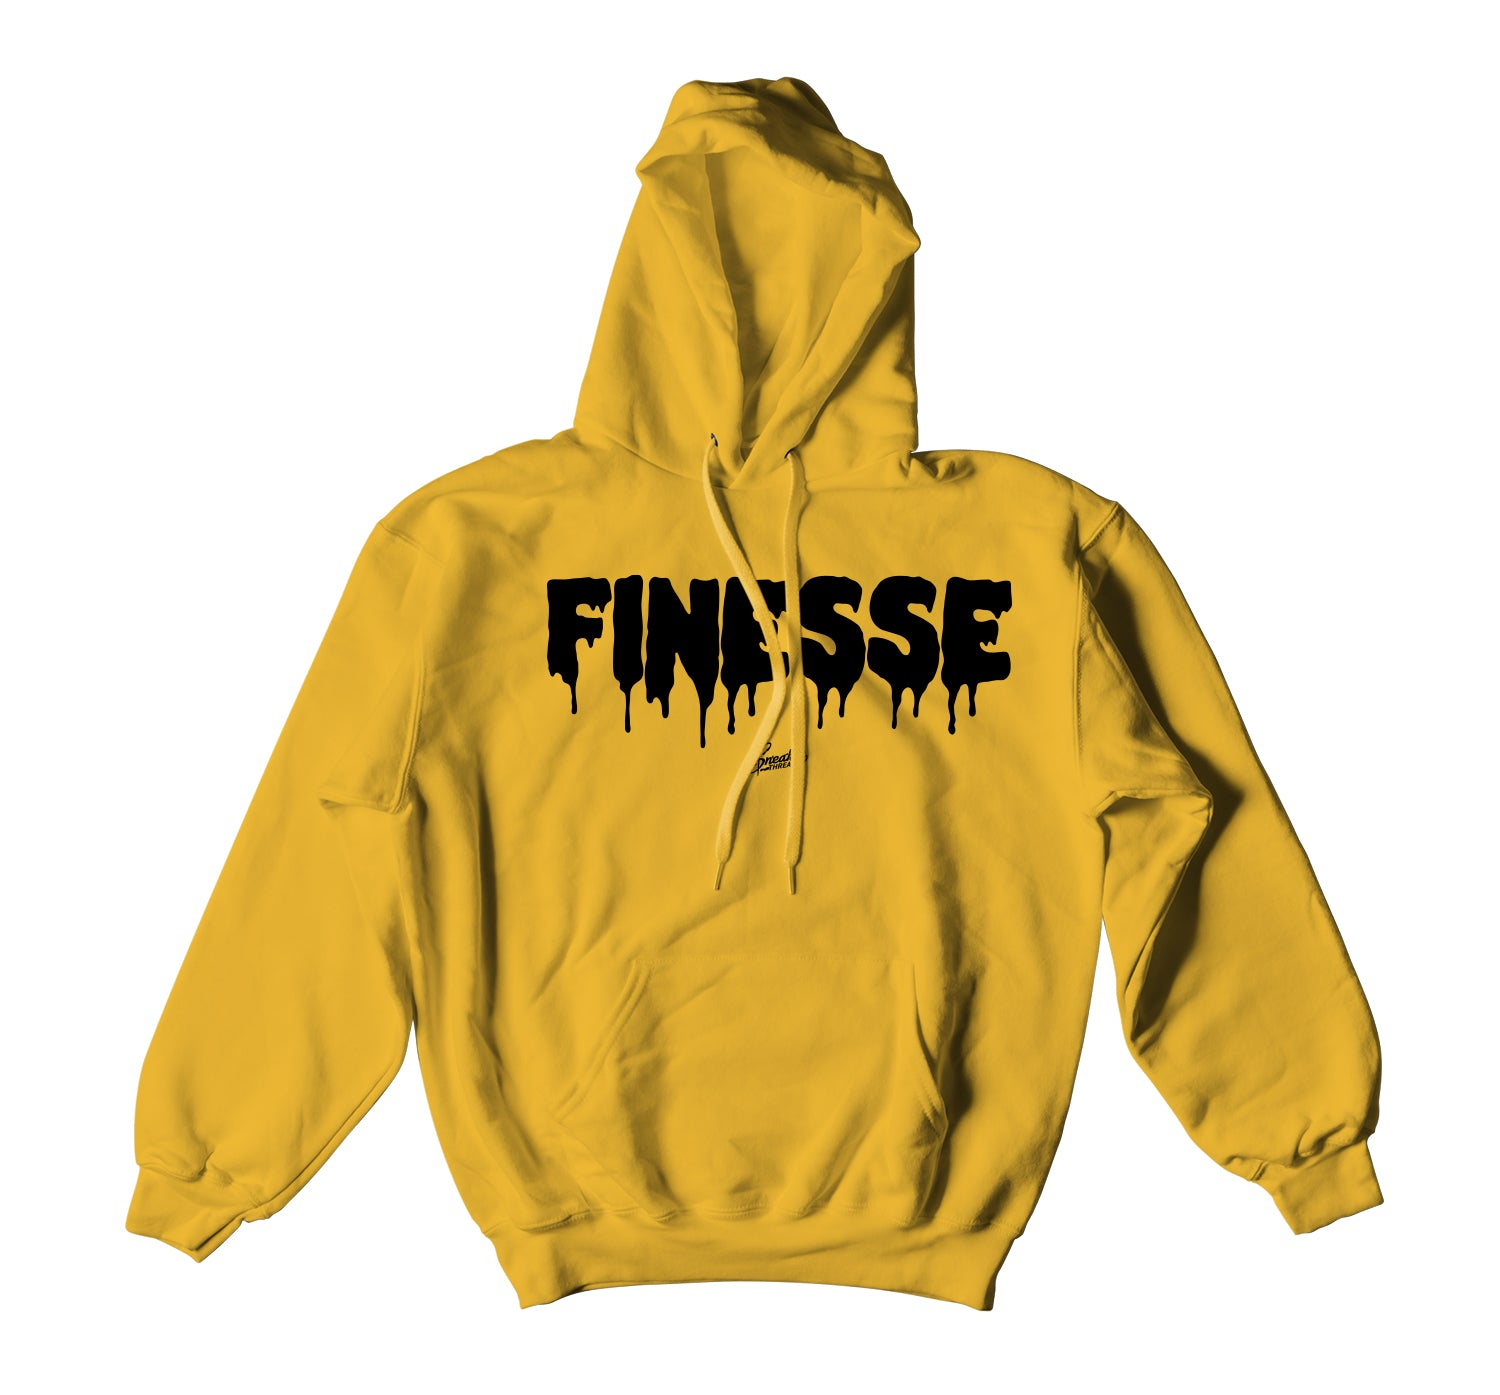 hoody to match Jordan 9 university gold sneakers